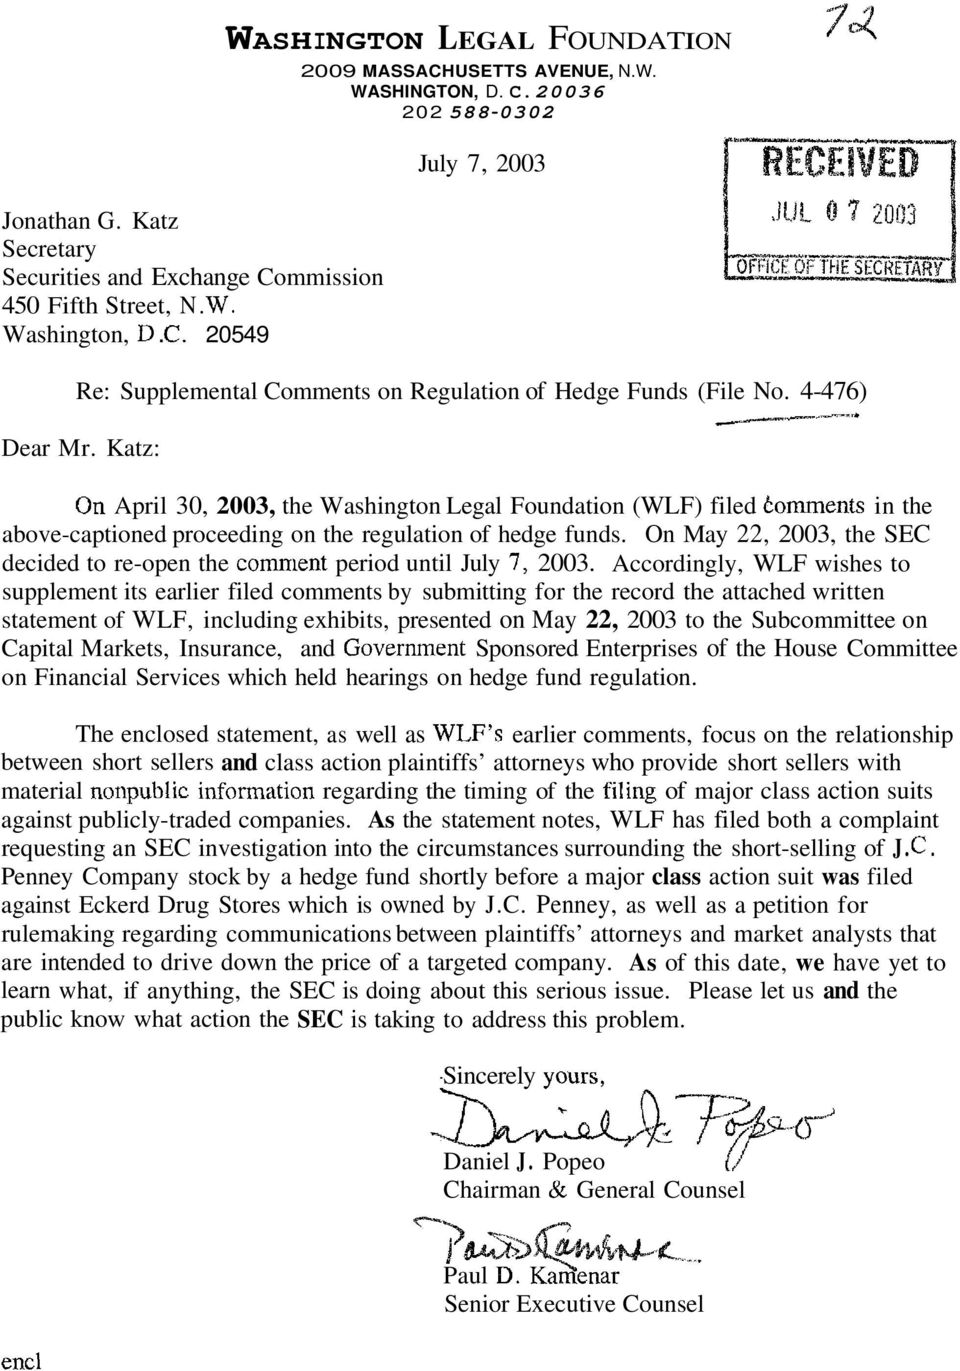 On May 22, 2003, the SEC decided to re-open the comment period until July 7, 2003.